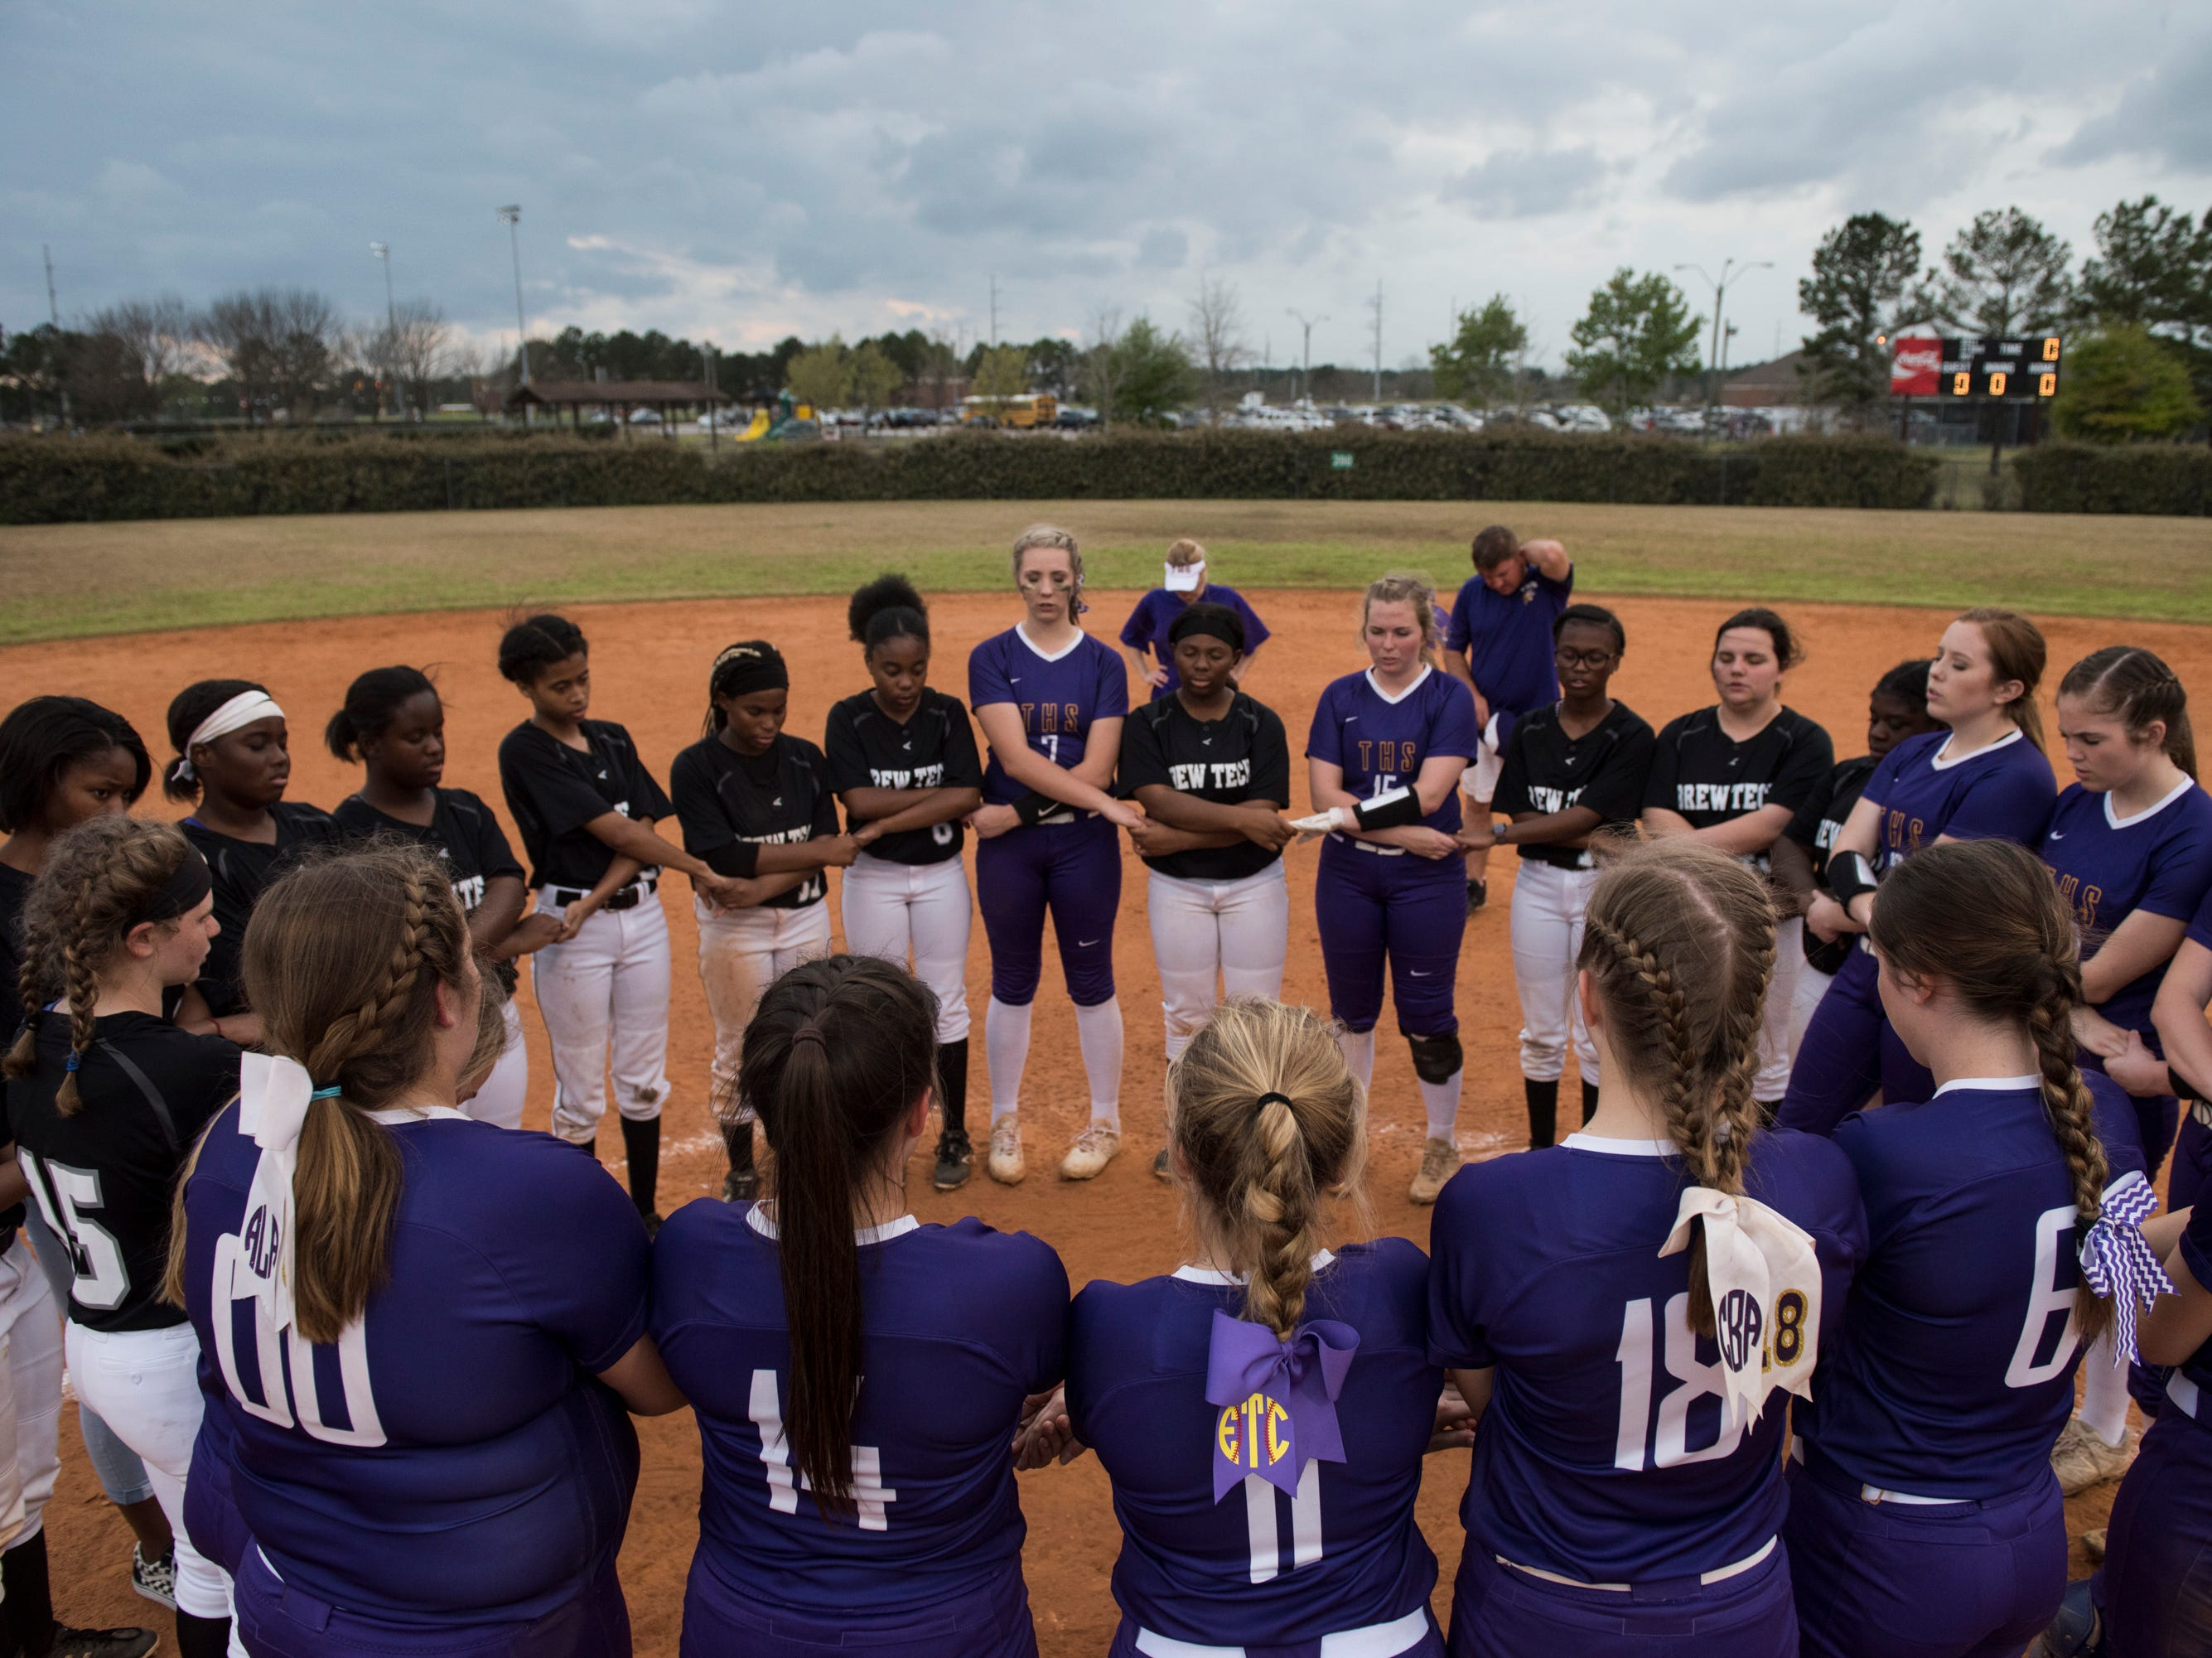 Brew Tech and Tallassee pray together after the game at Thompson Park in Montgomery, Ala., on Thursday, March 14, 2019. Tallassee defeated Brew Tech 7-0.